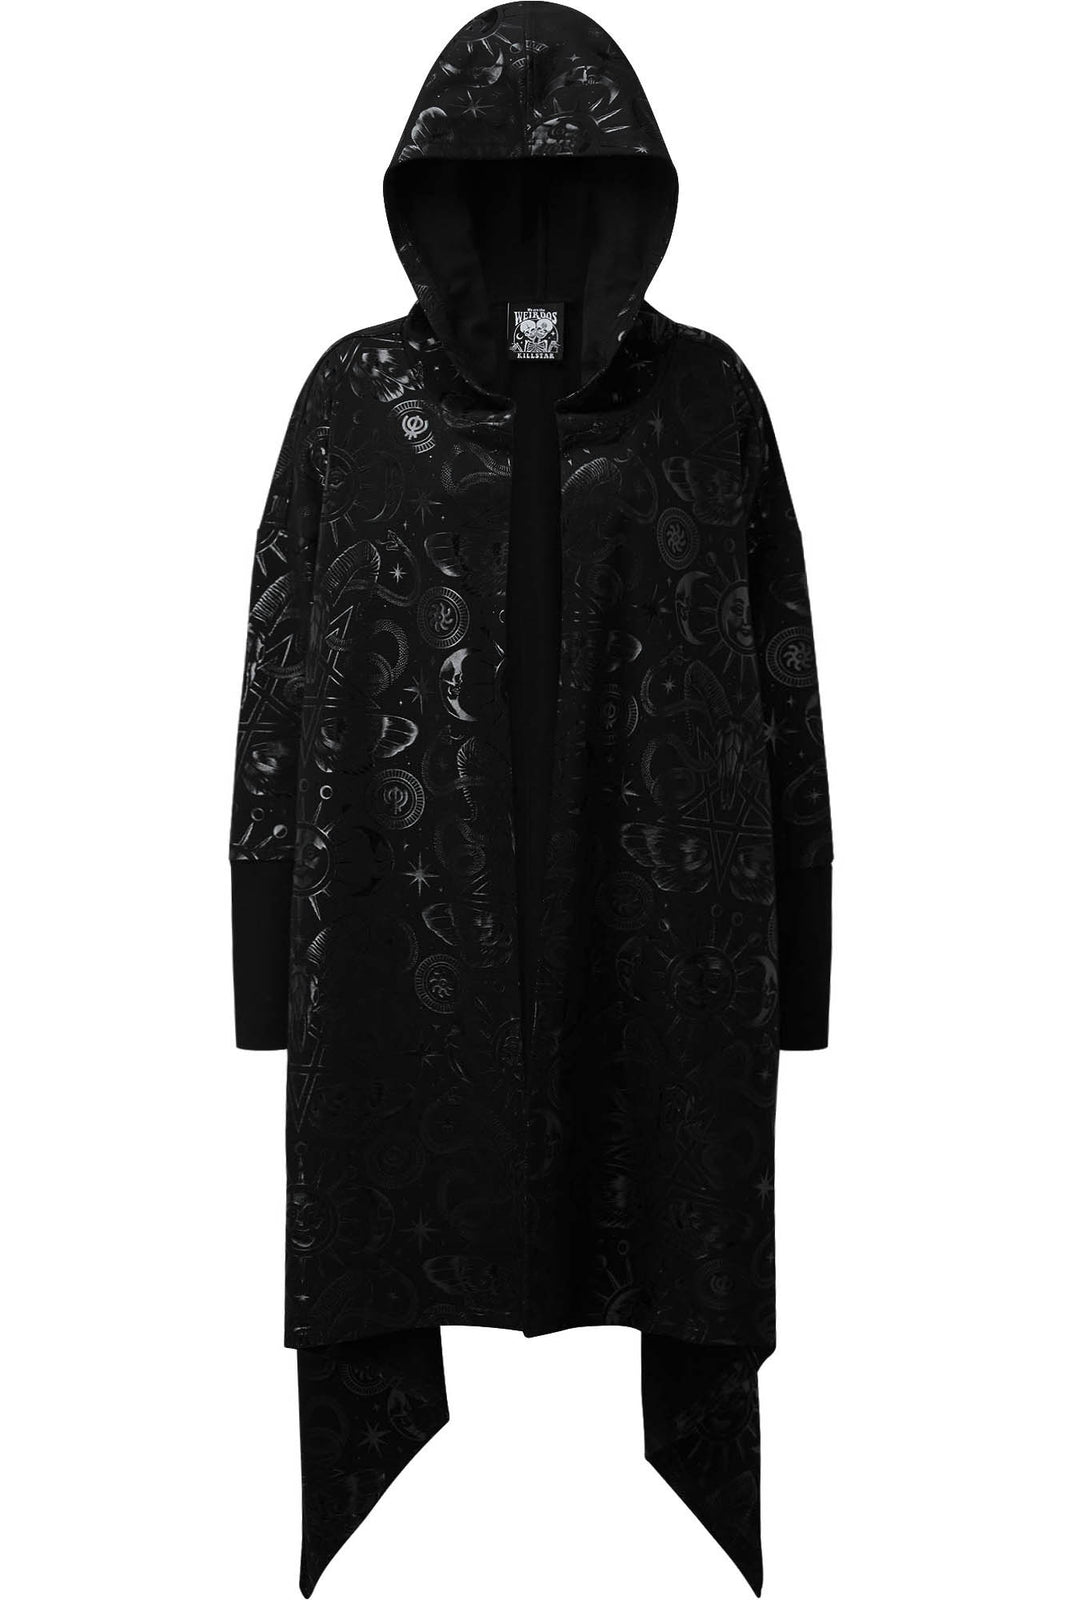 Demon Hooded Cardigan [PLUS]